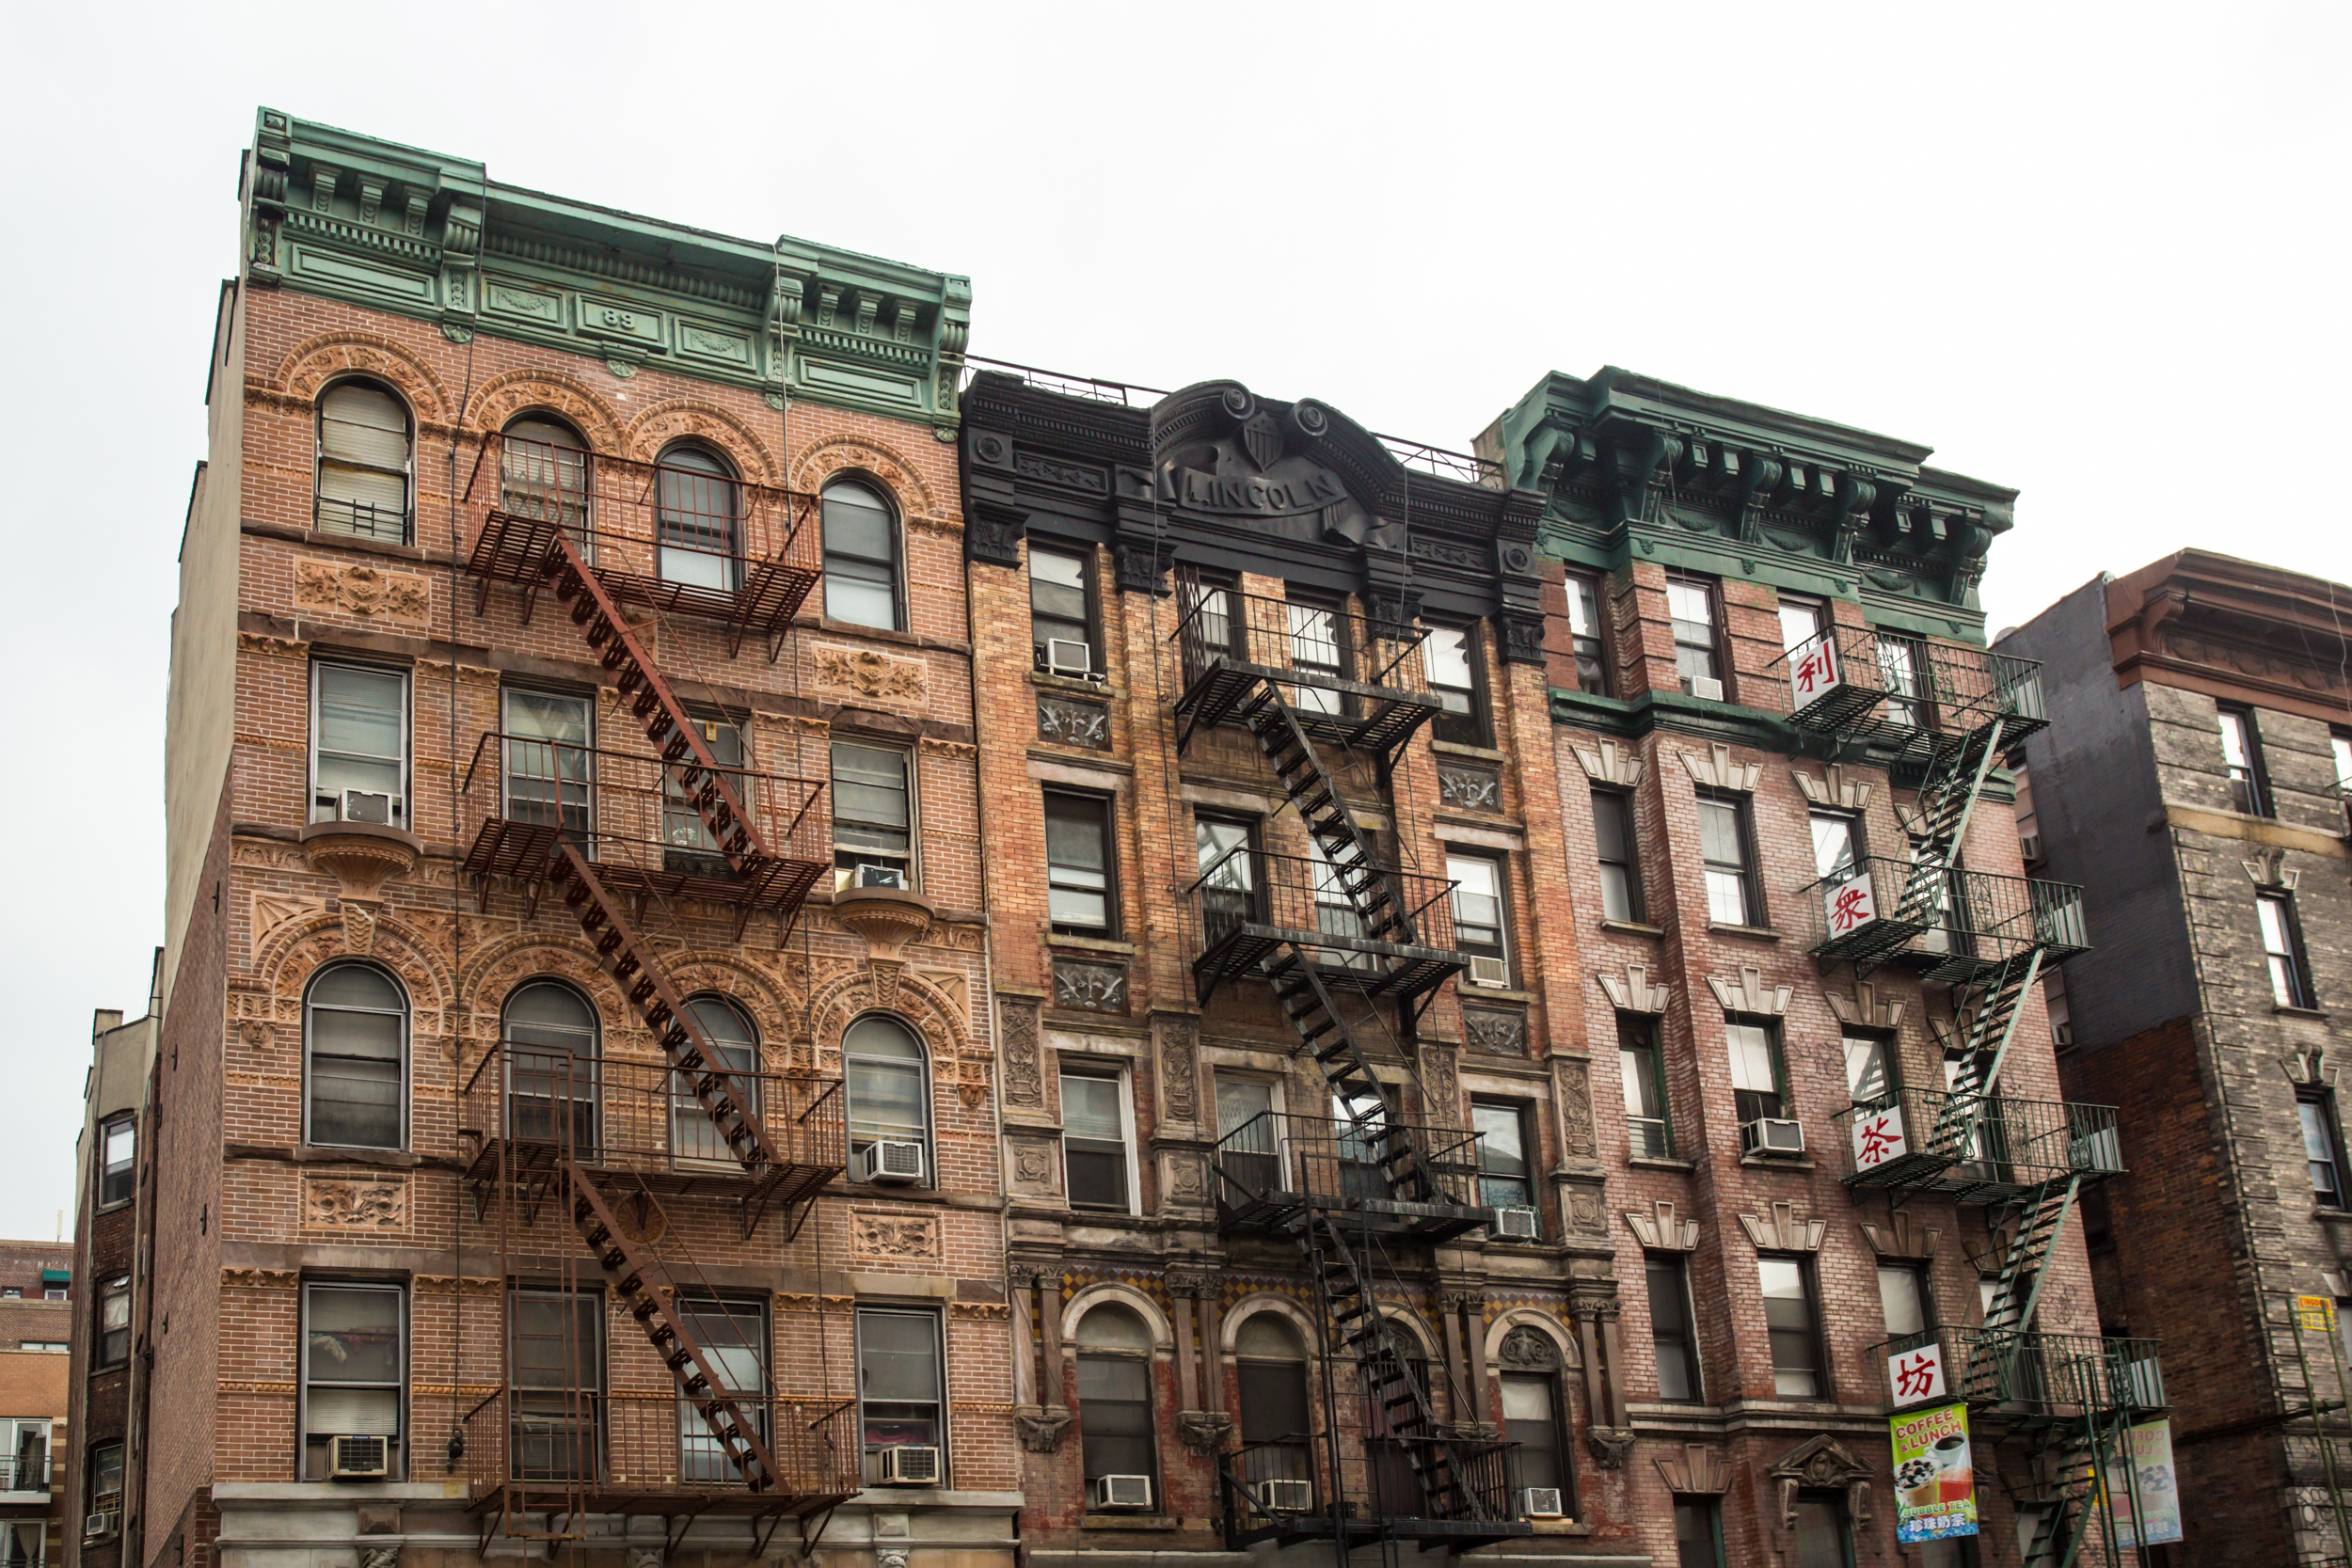 Rent-stabilized landlords see operating costs increase, again